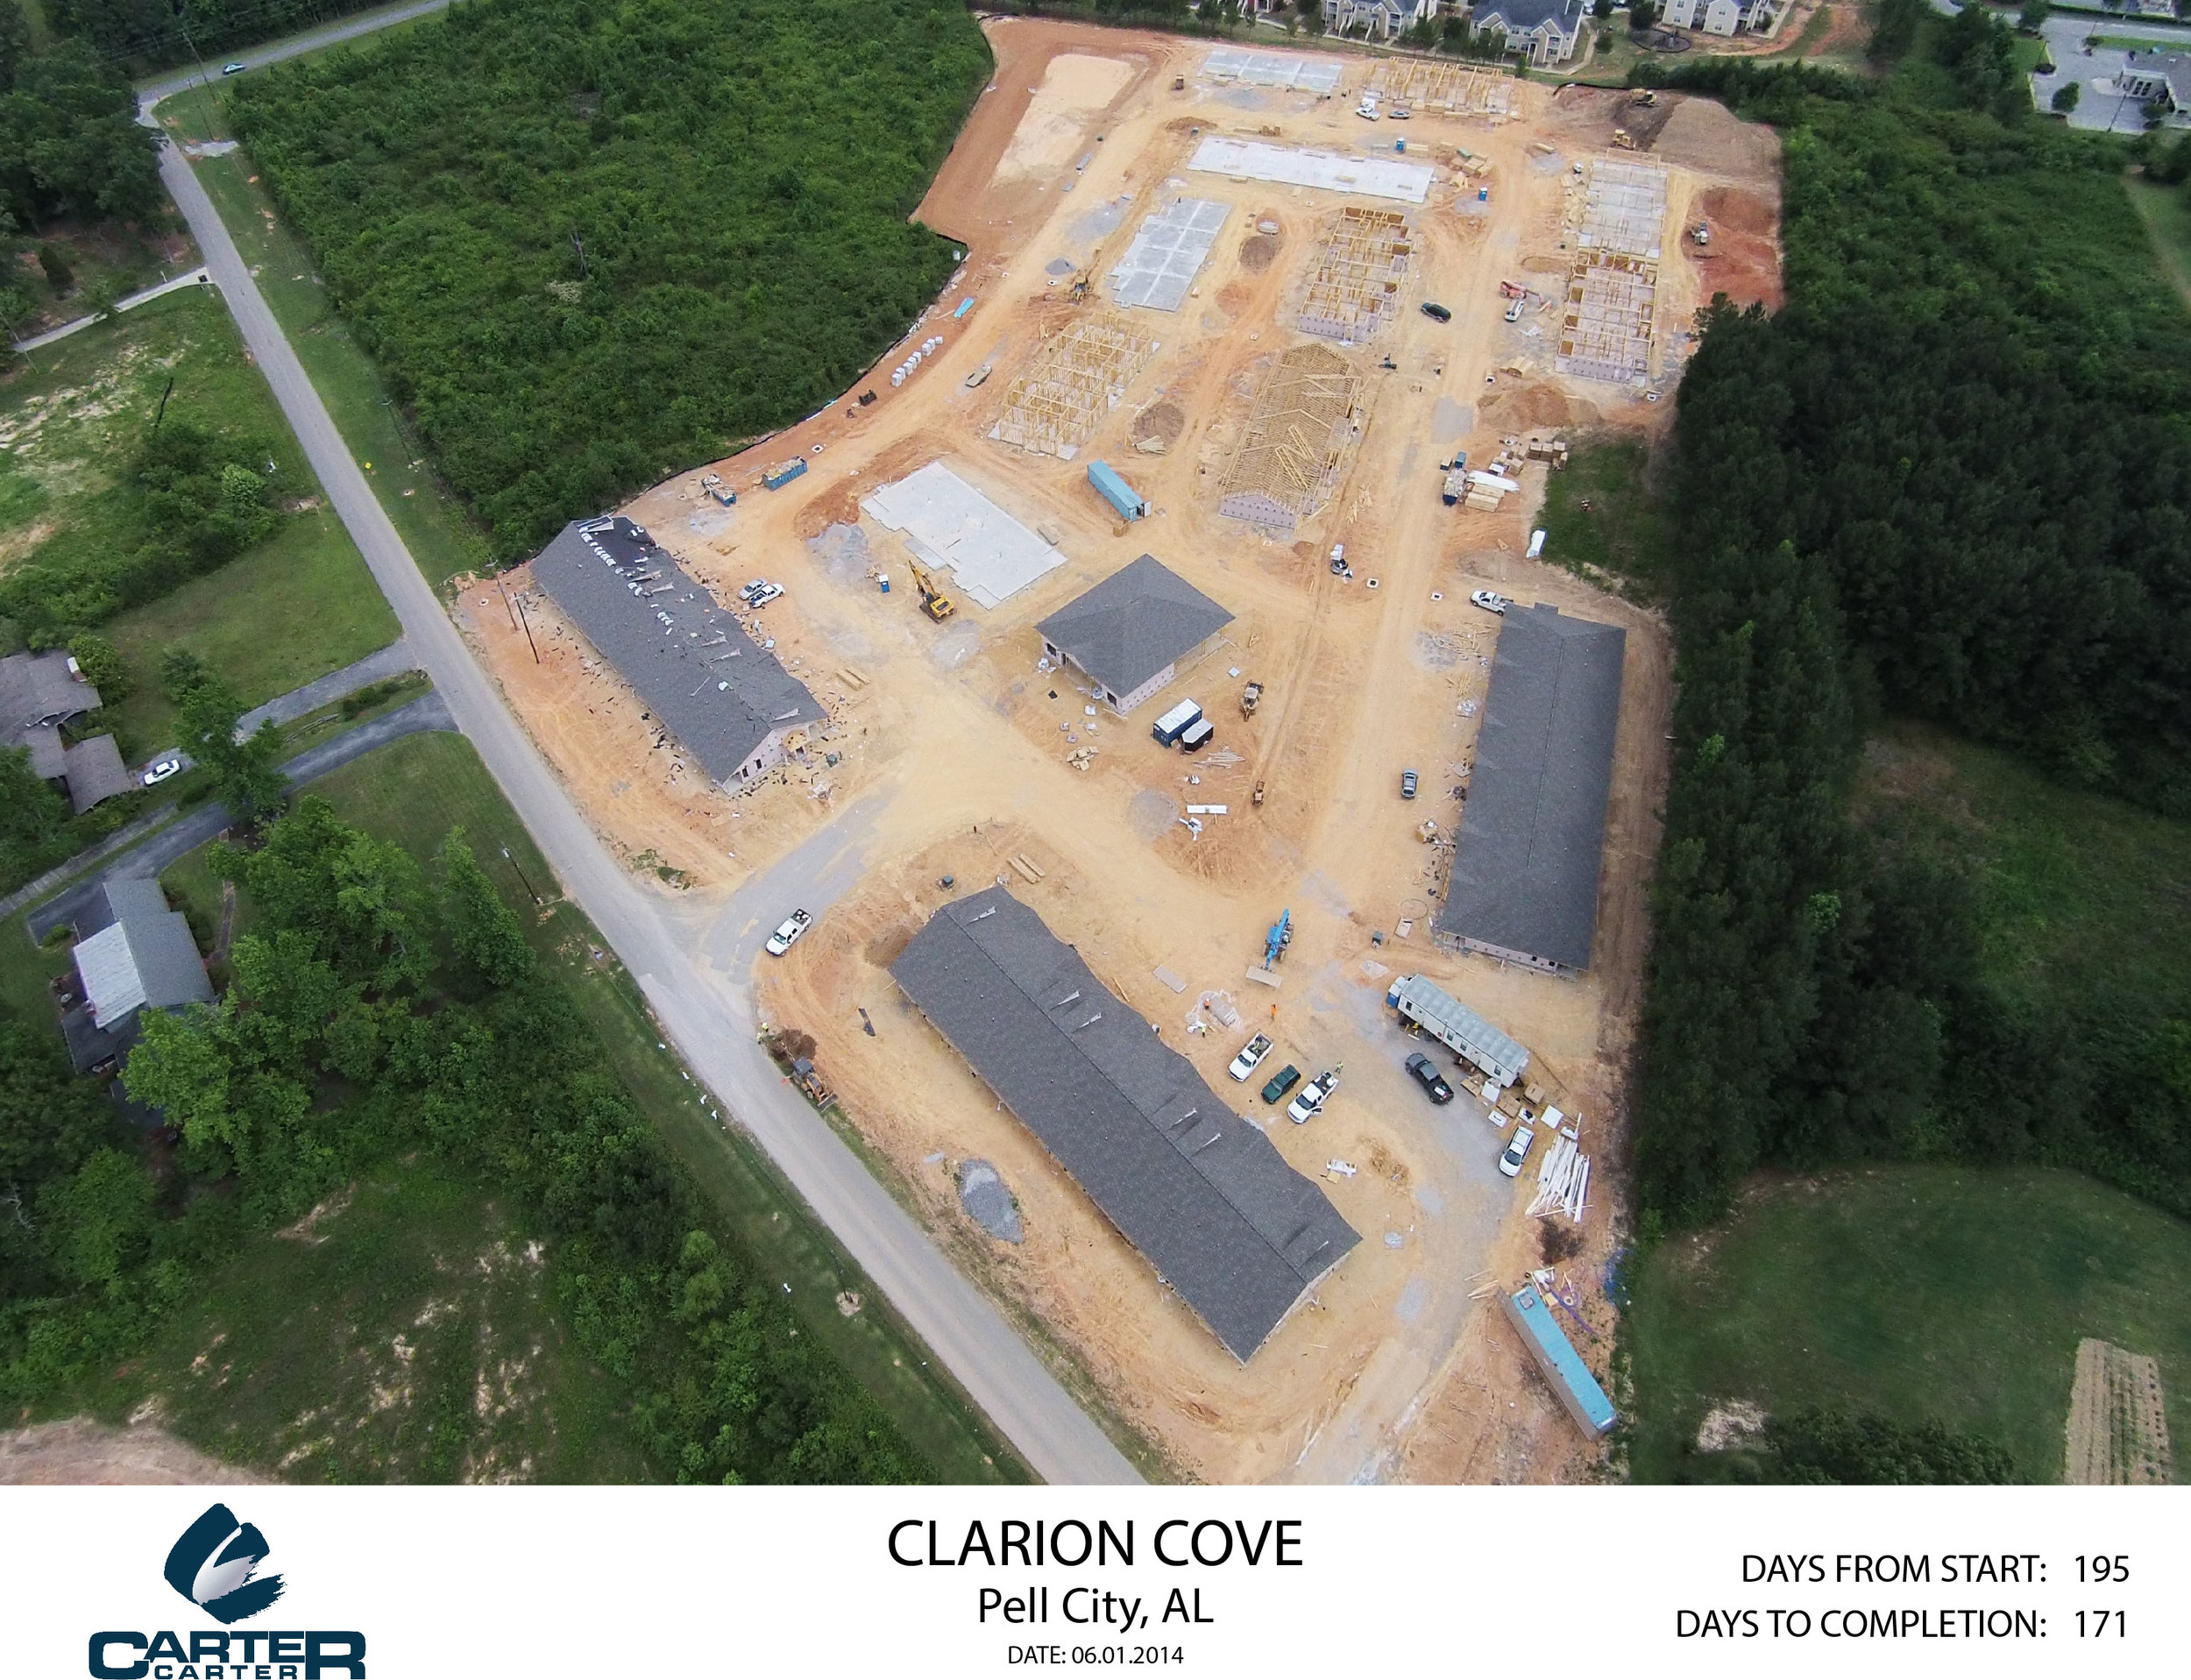 Clarion Cove 140601-1.jpg